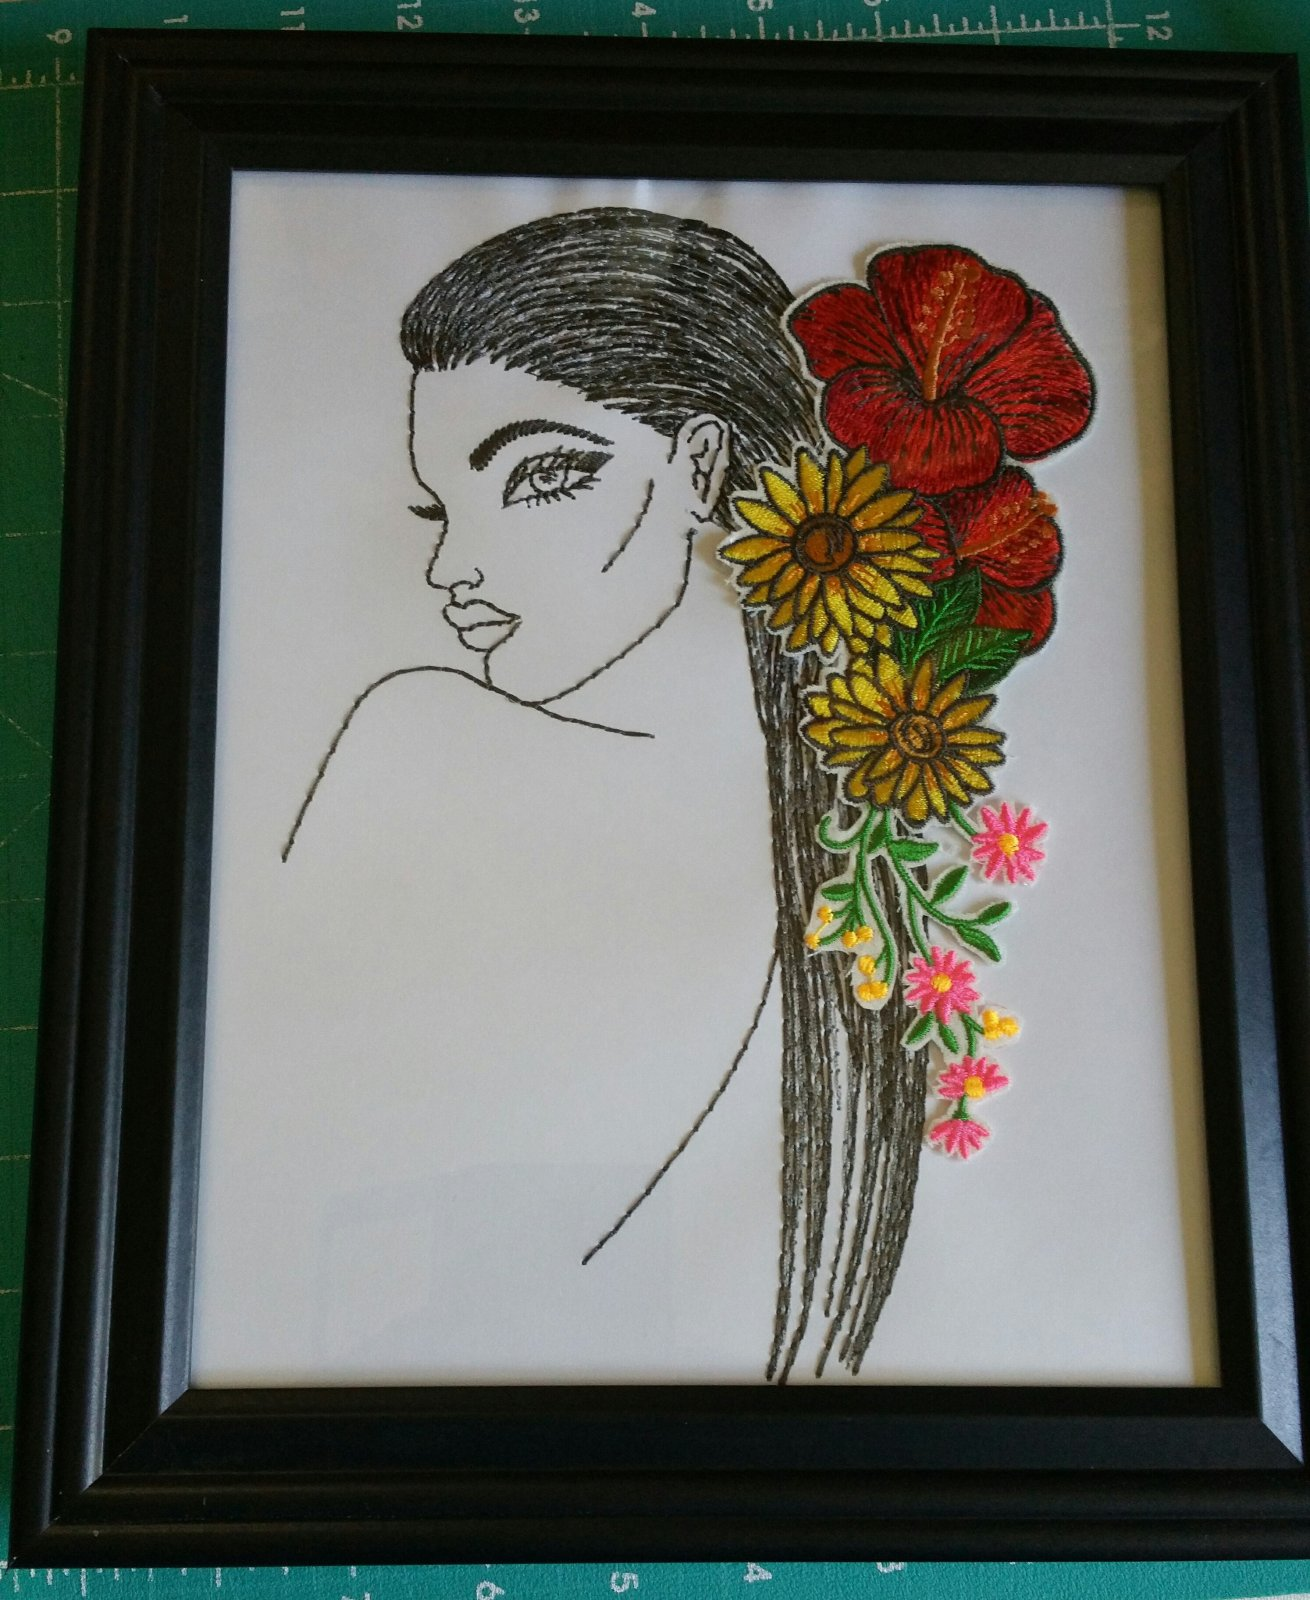 Dimensional Hairstyles Embroidered Picture 3 with frame